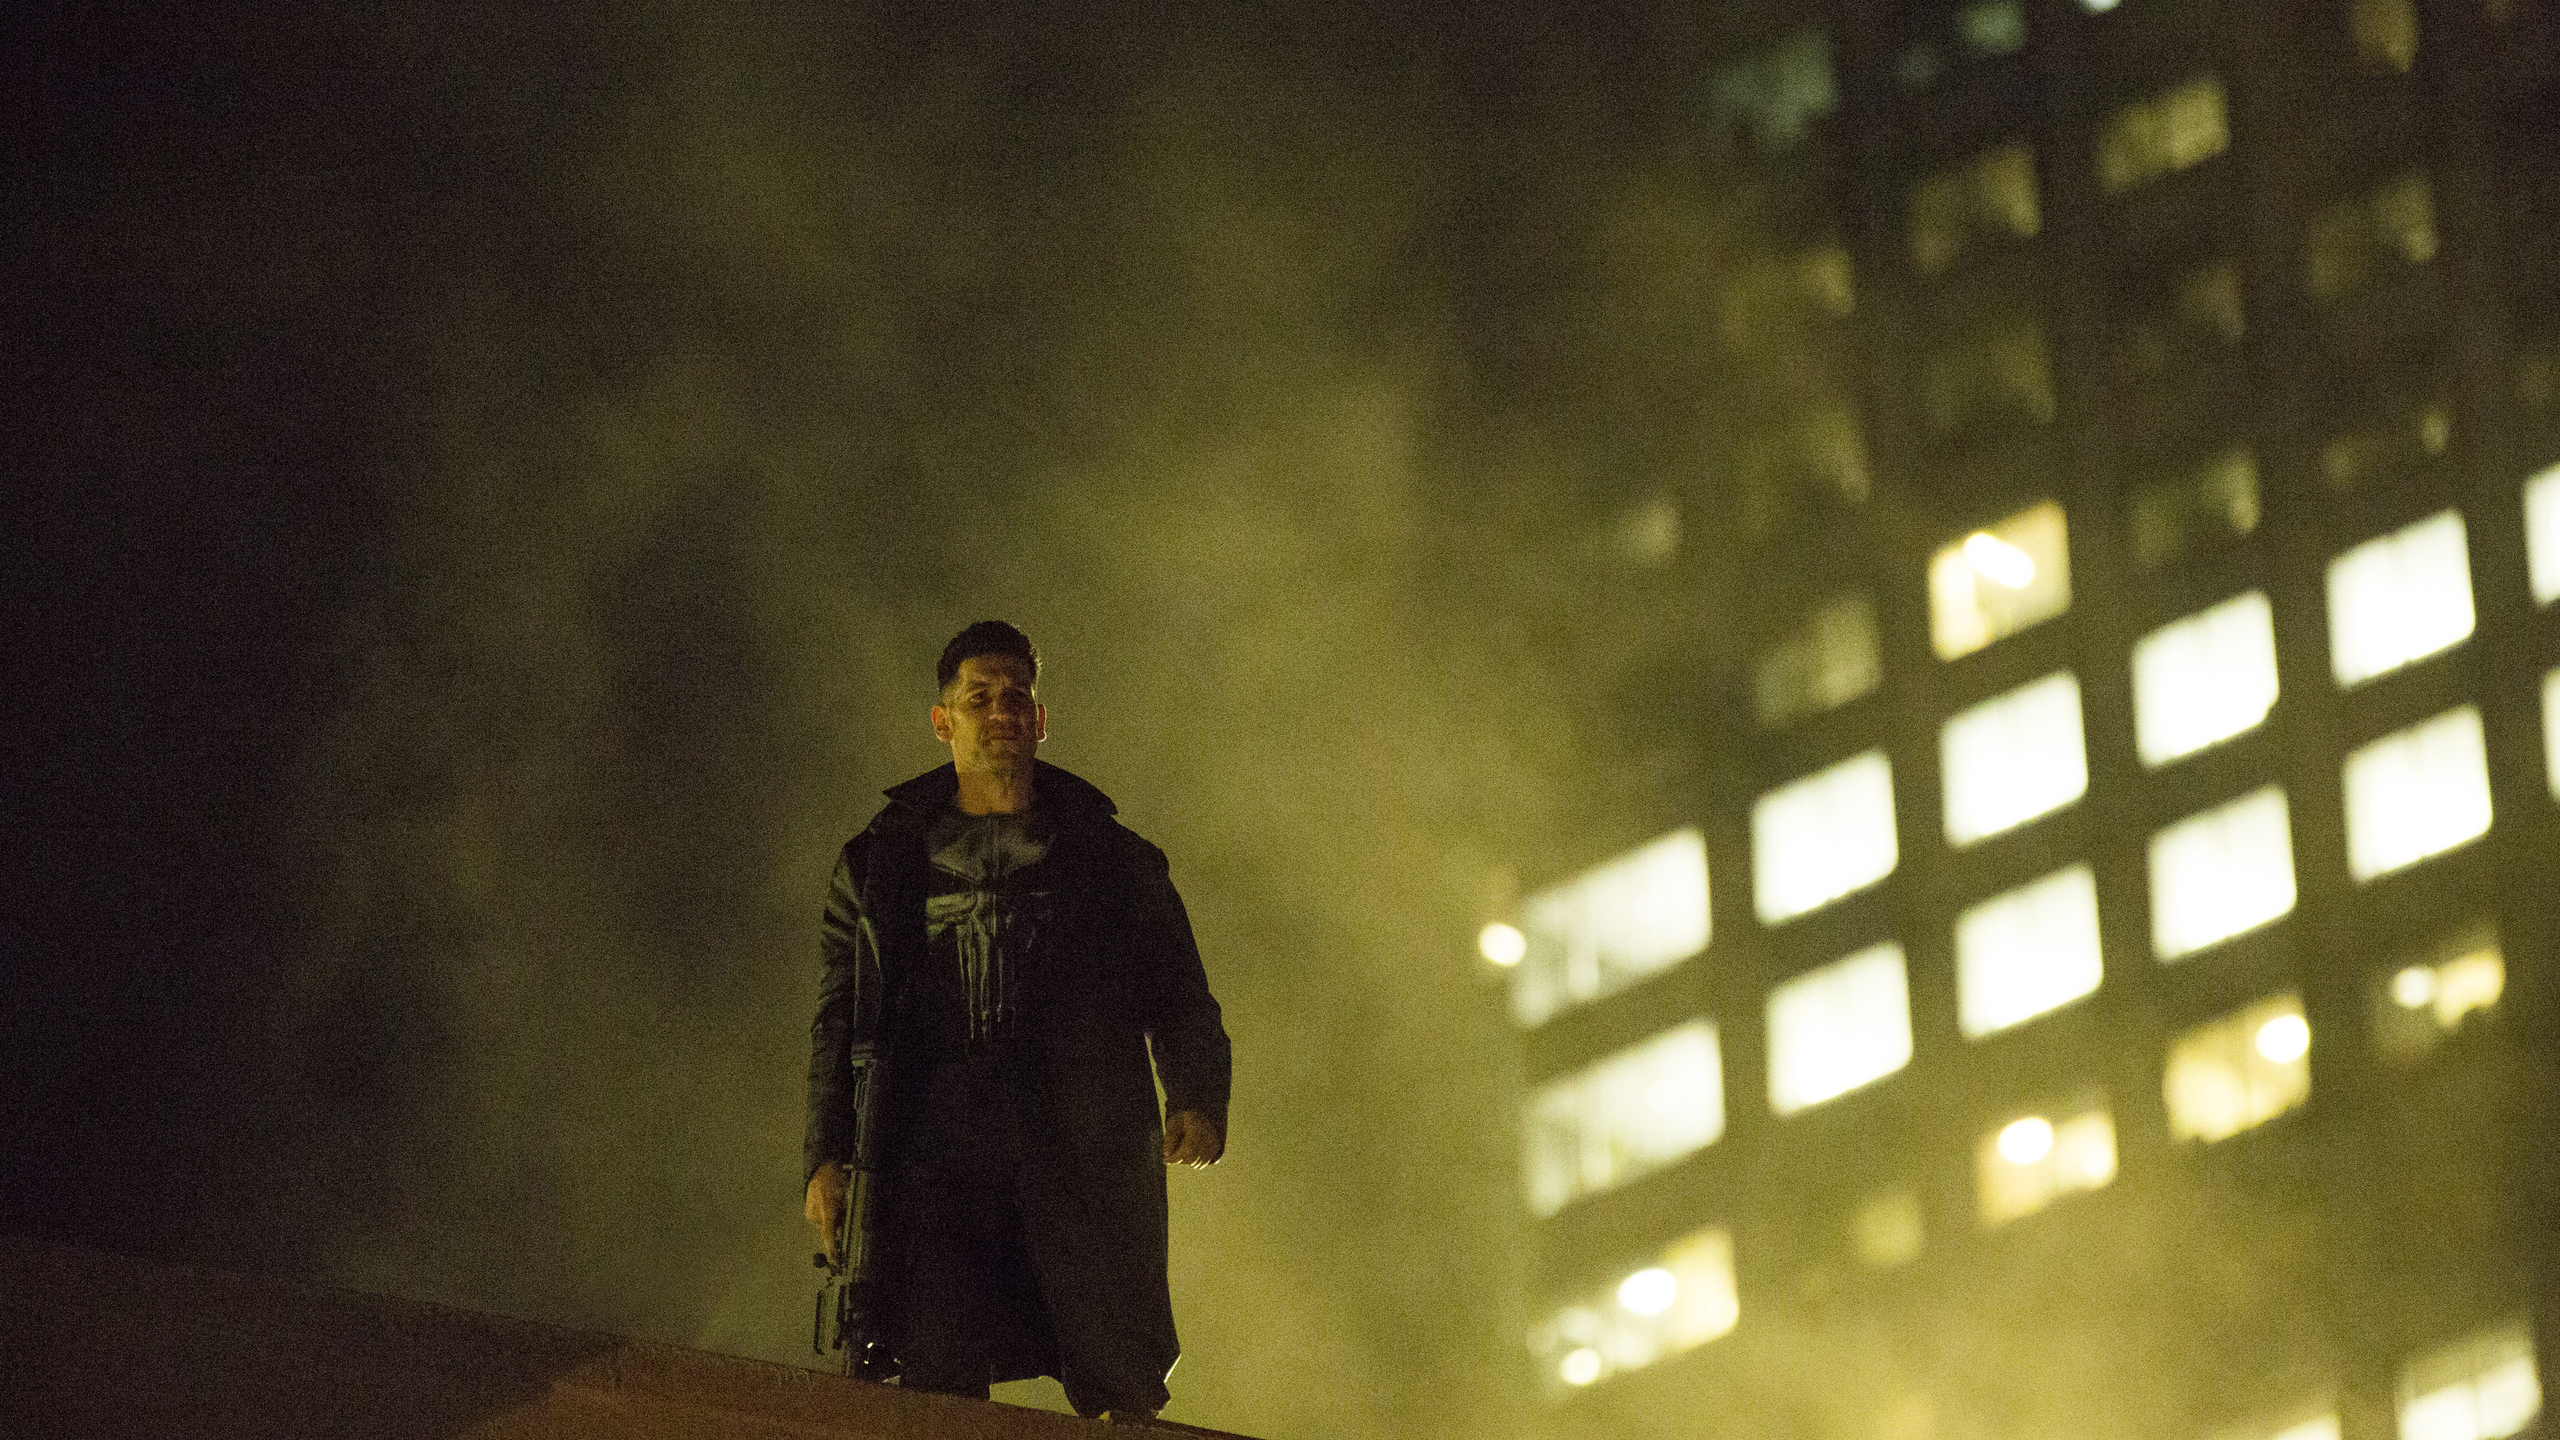 frank-castle-in-the-punisher-2017-66.jpg